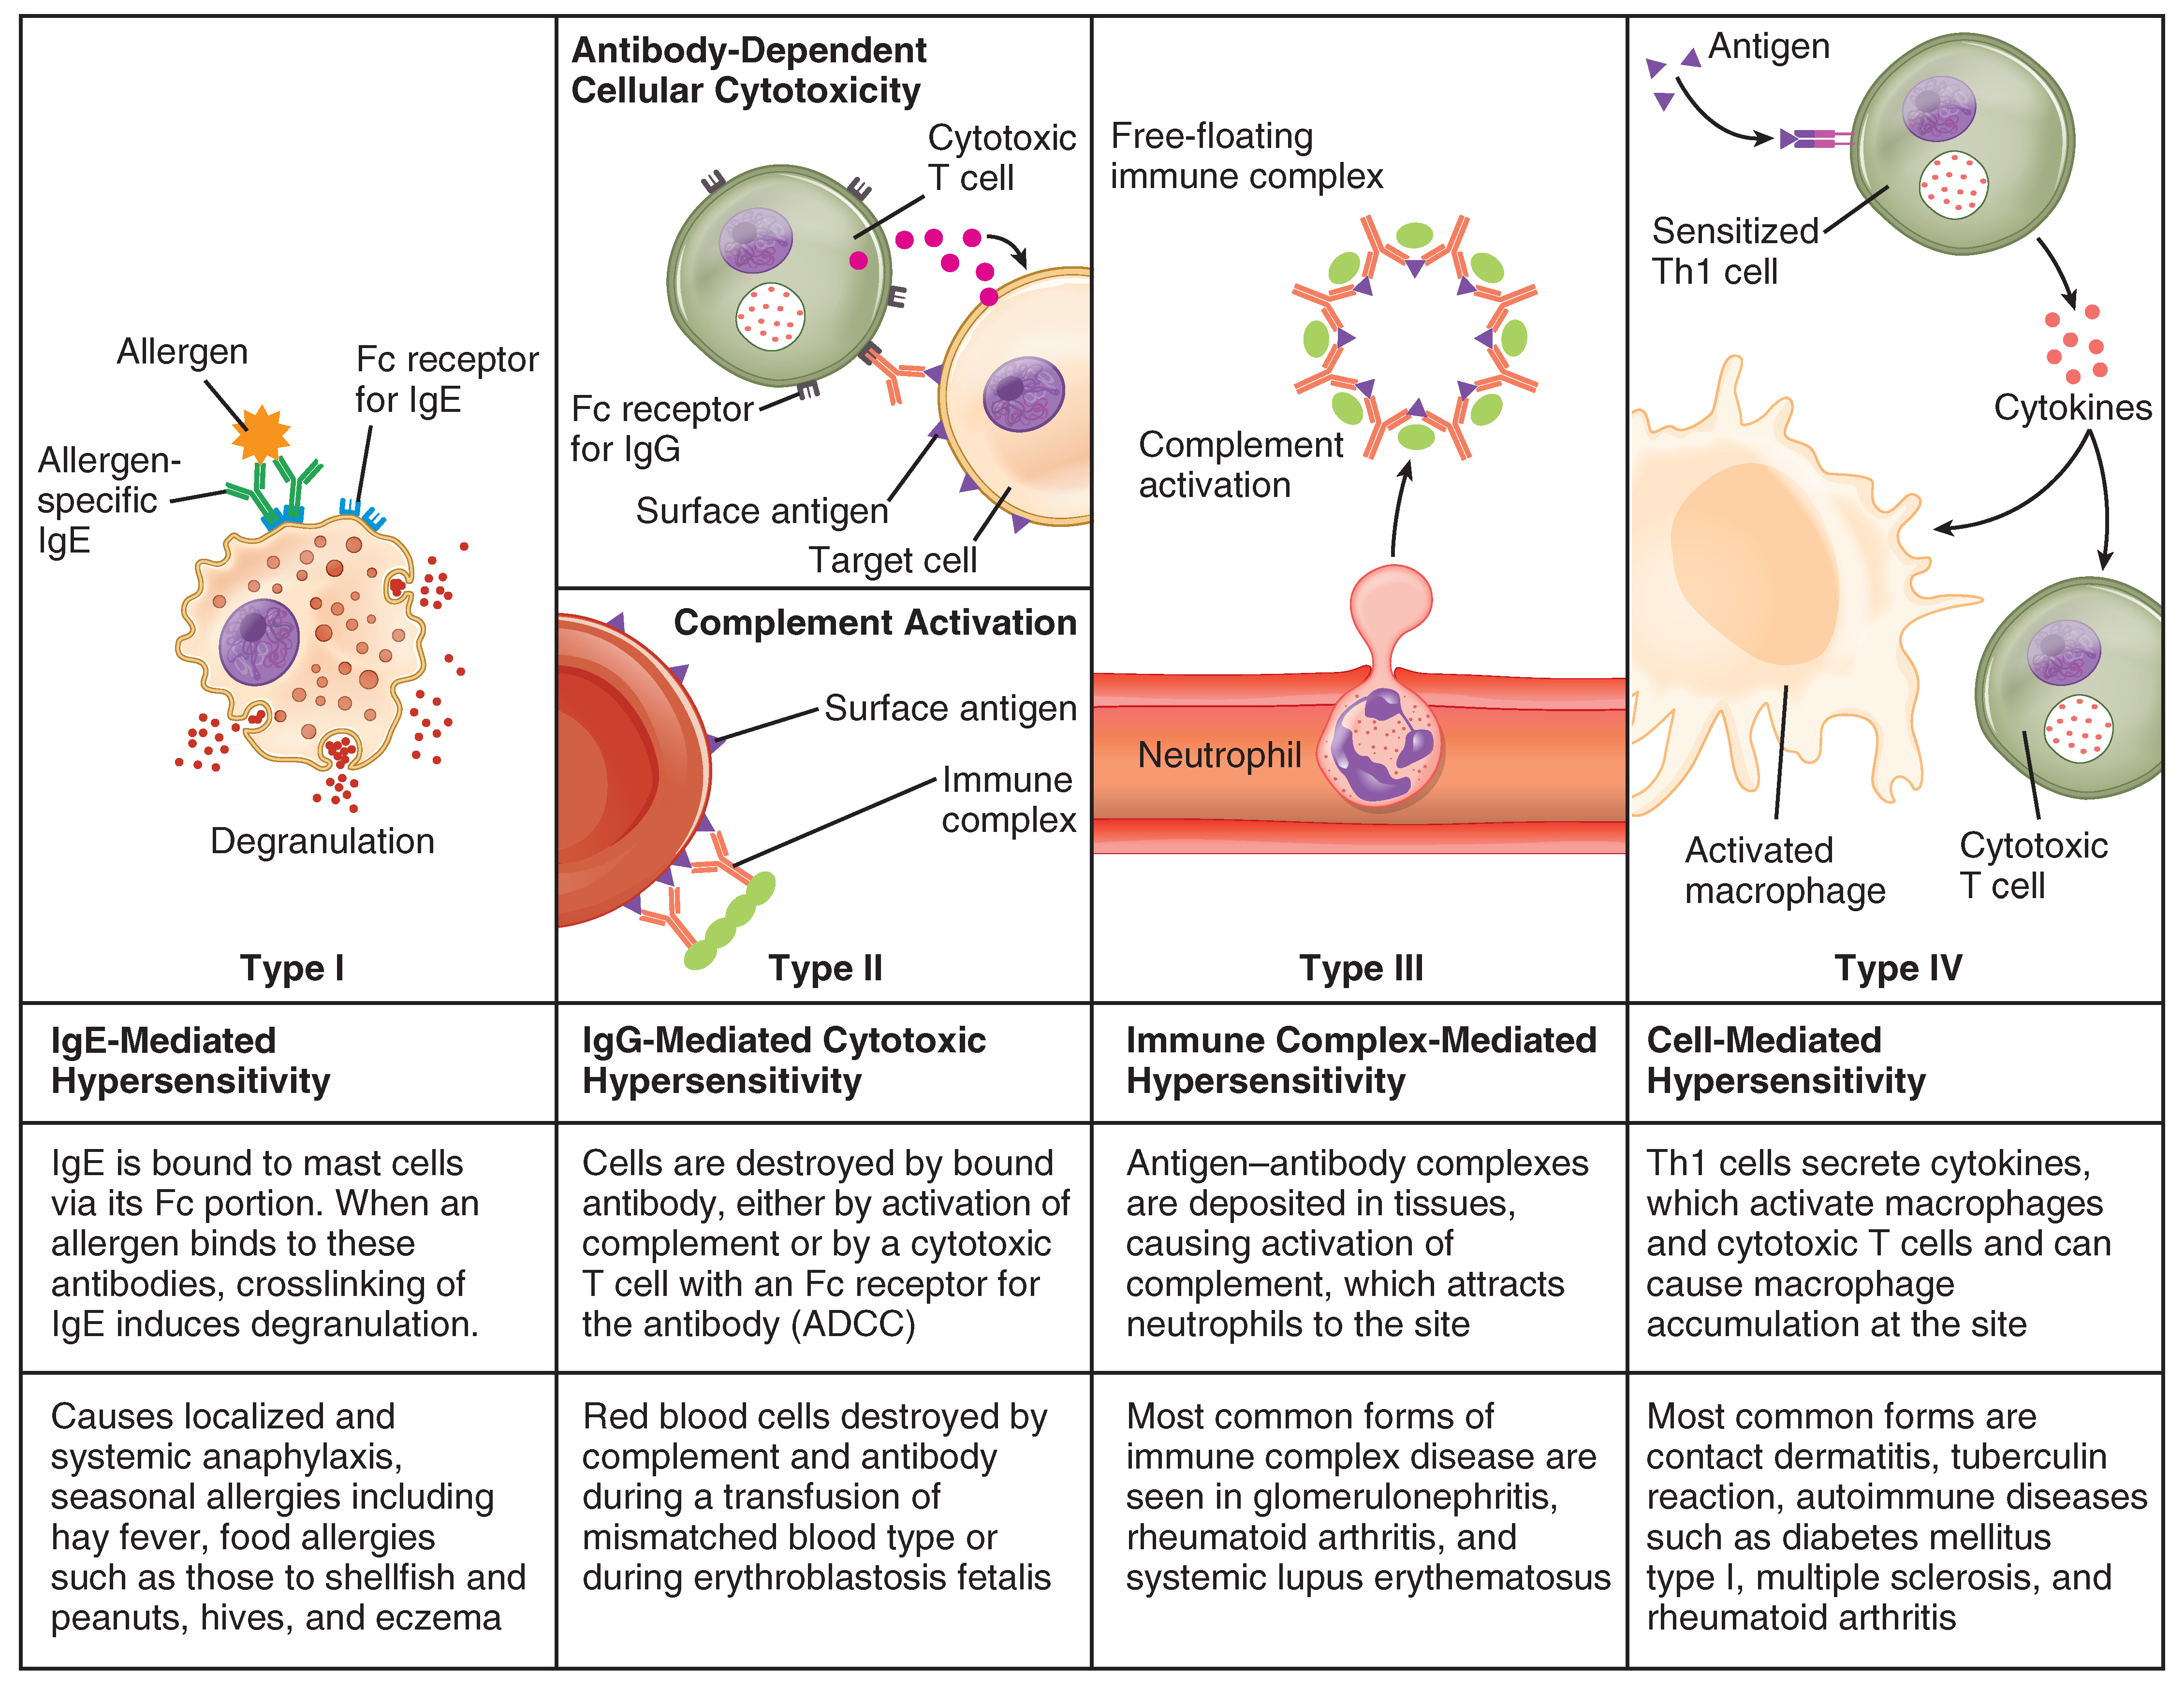 This table describes different types of hypersensitivity. In Type I (IgE-Mediated Hypersensitivity), IgE is bound to mast cells via its Fc portion. When an allergen binds to these antibodies, crosslinking of IgE induces degranulation. Type I causes localized and systemic anaphylaxis, seasonal allergies including hay fever, food allergies such as those to shellfish and peanuts, hives, and eczema. In Type II (IgG-Mediated Hypersensitivity), cells are destroyed by bound antibody, either by activation of complement or by a cytotoxic T cell with an Fc receptor for the antibody (ADCC). Examples are when red blood cells are destroyed by complement and antibody during a transfusion of mismatched blood types or during erythroblastosis fetalis. In Type III (Immune Complex-Mediated Hypersensitivity), antigen-antibody complexes are deposited in tissues, causing activation of complement, which attracts neutrophils to the site. Most common forms of immune complex disease are seen in glomerulonephritis, rheumatoid arthritis, and systemic lupus erythematosus. In Type IV (Cell-Mediated Hypersensitivity), Th1 cells secrete cytokines, which activate macrophages and cytotoxic T cells and can cause macrophage accumulation at the site. Most common forms are contact dermatitis, tuberculin reaction, and autoimmune diseases such as diabetes mellitus type I, multiple sclerosis, and rheumatoid arthritis.